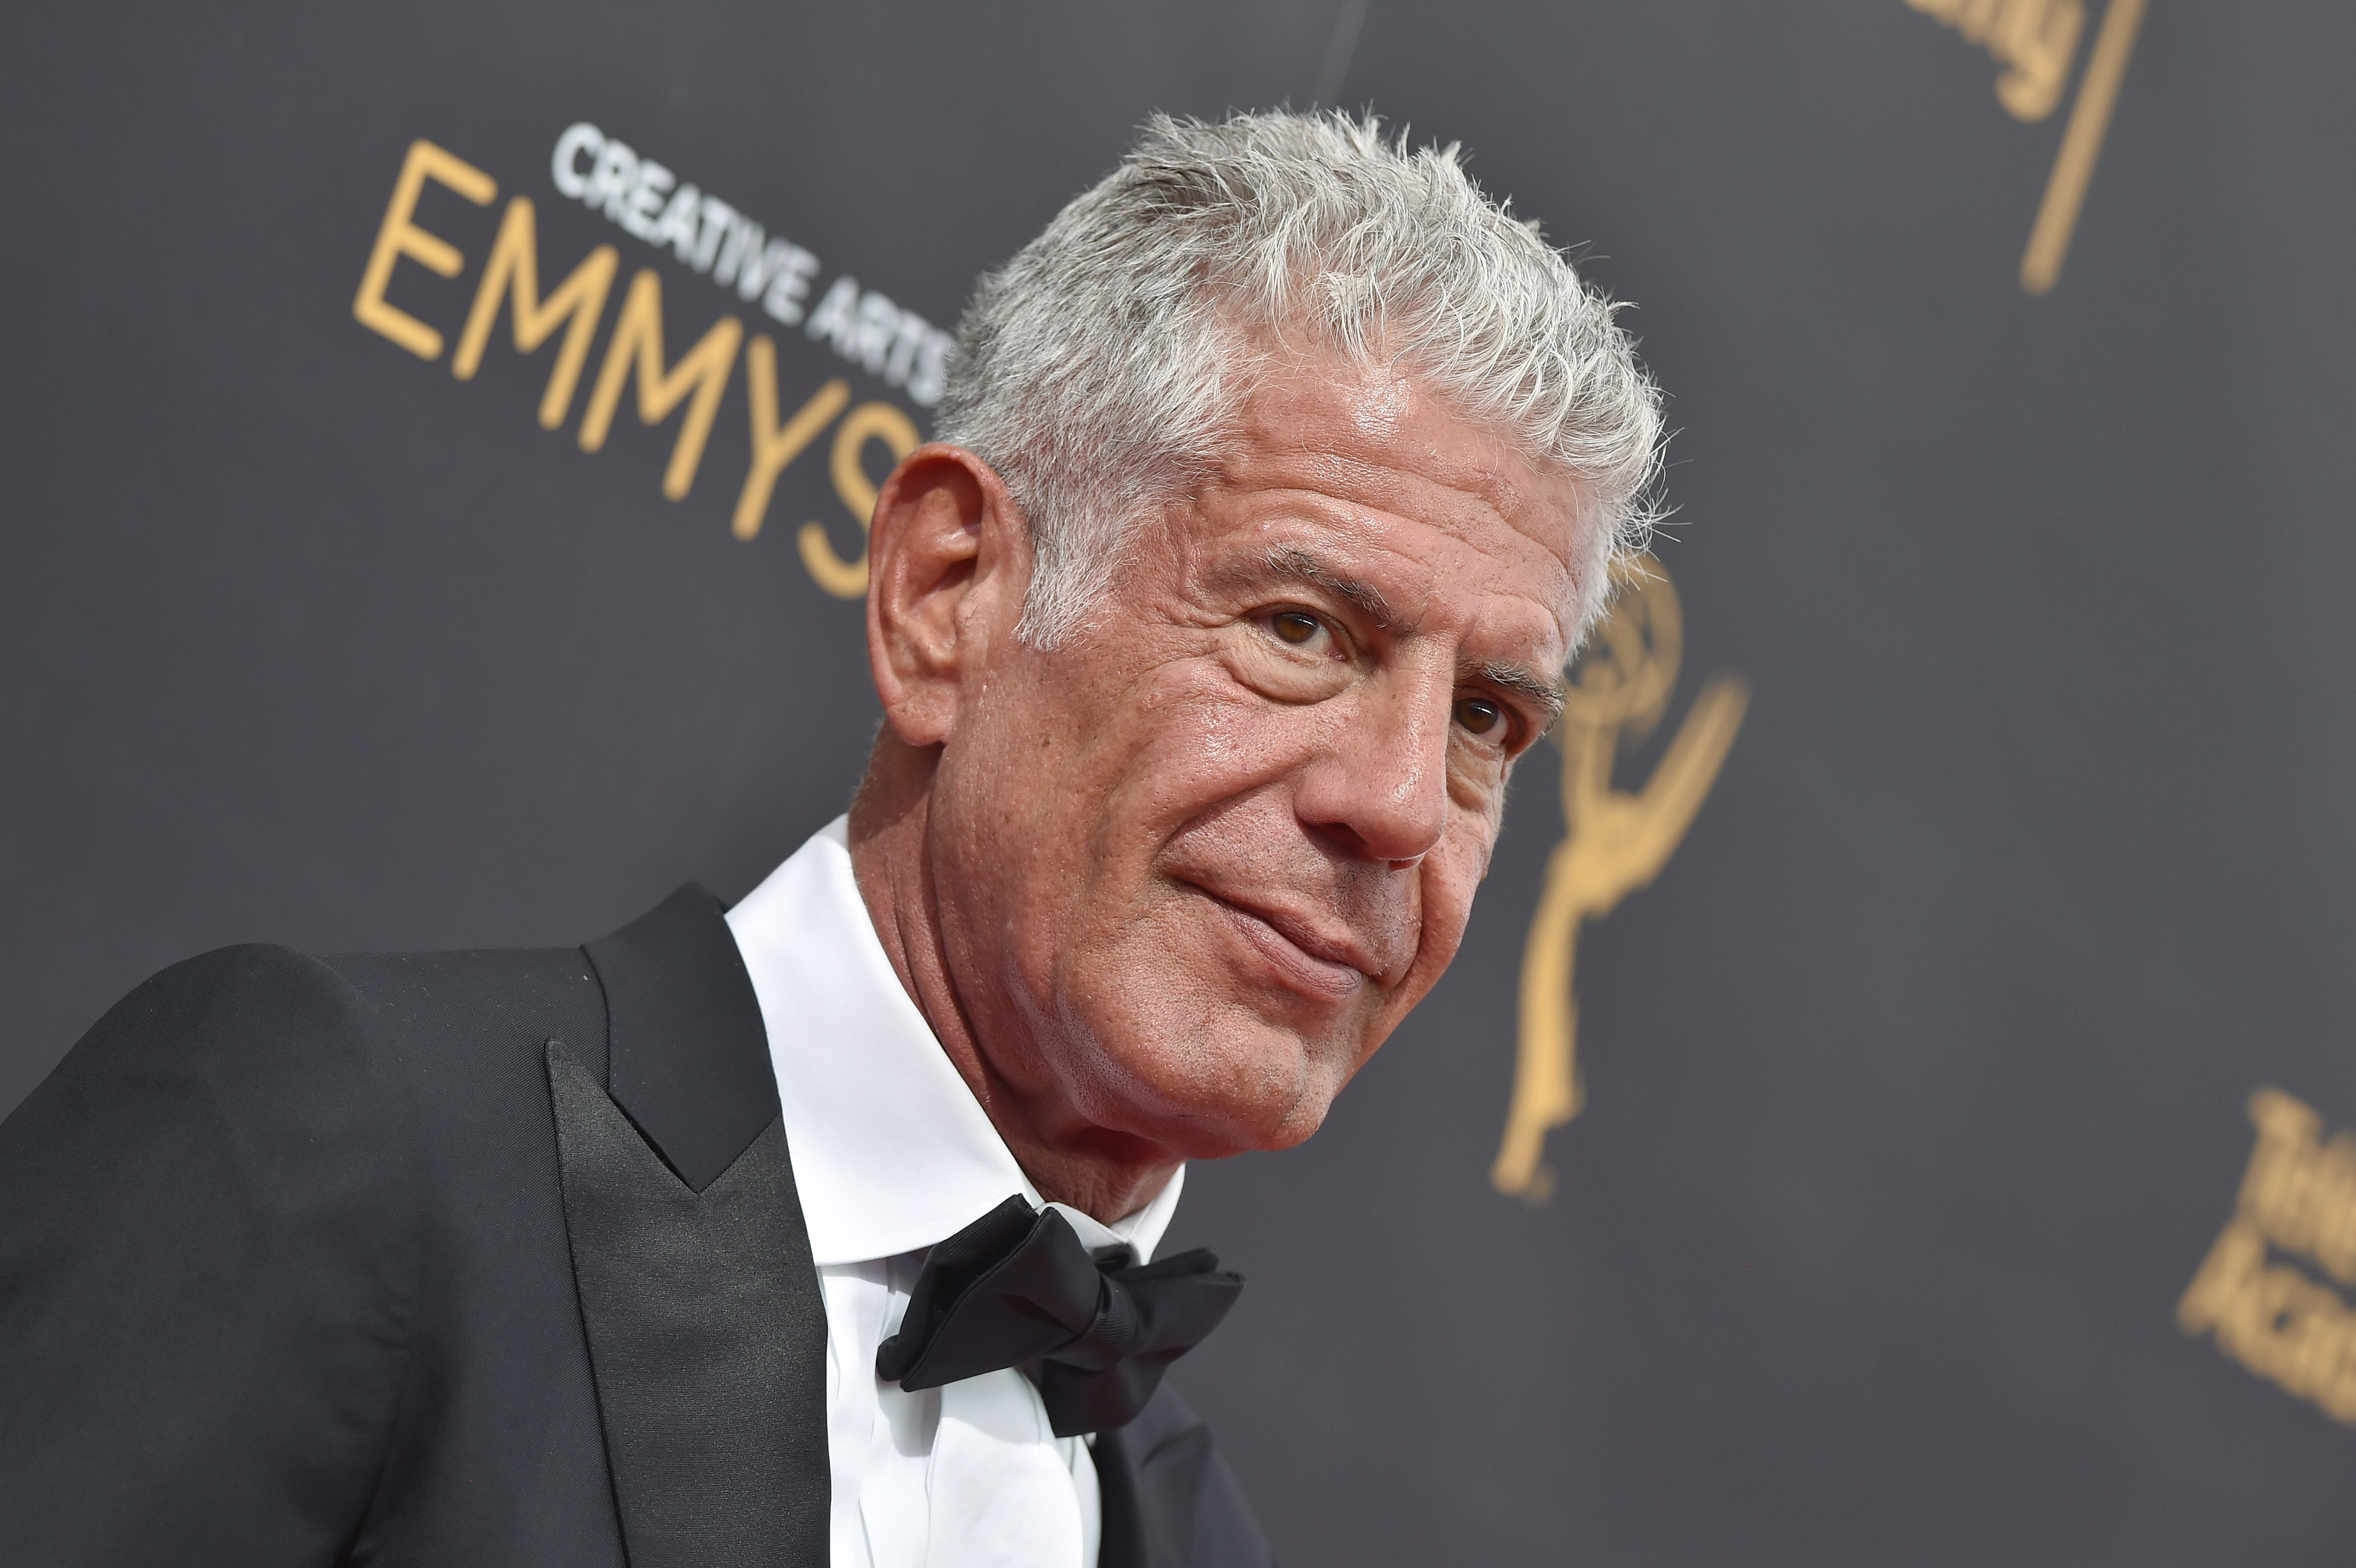 Anthony Bourdain Fought For Journalists to Expose Harvey Weinstein